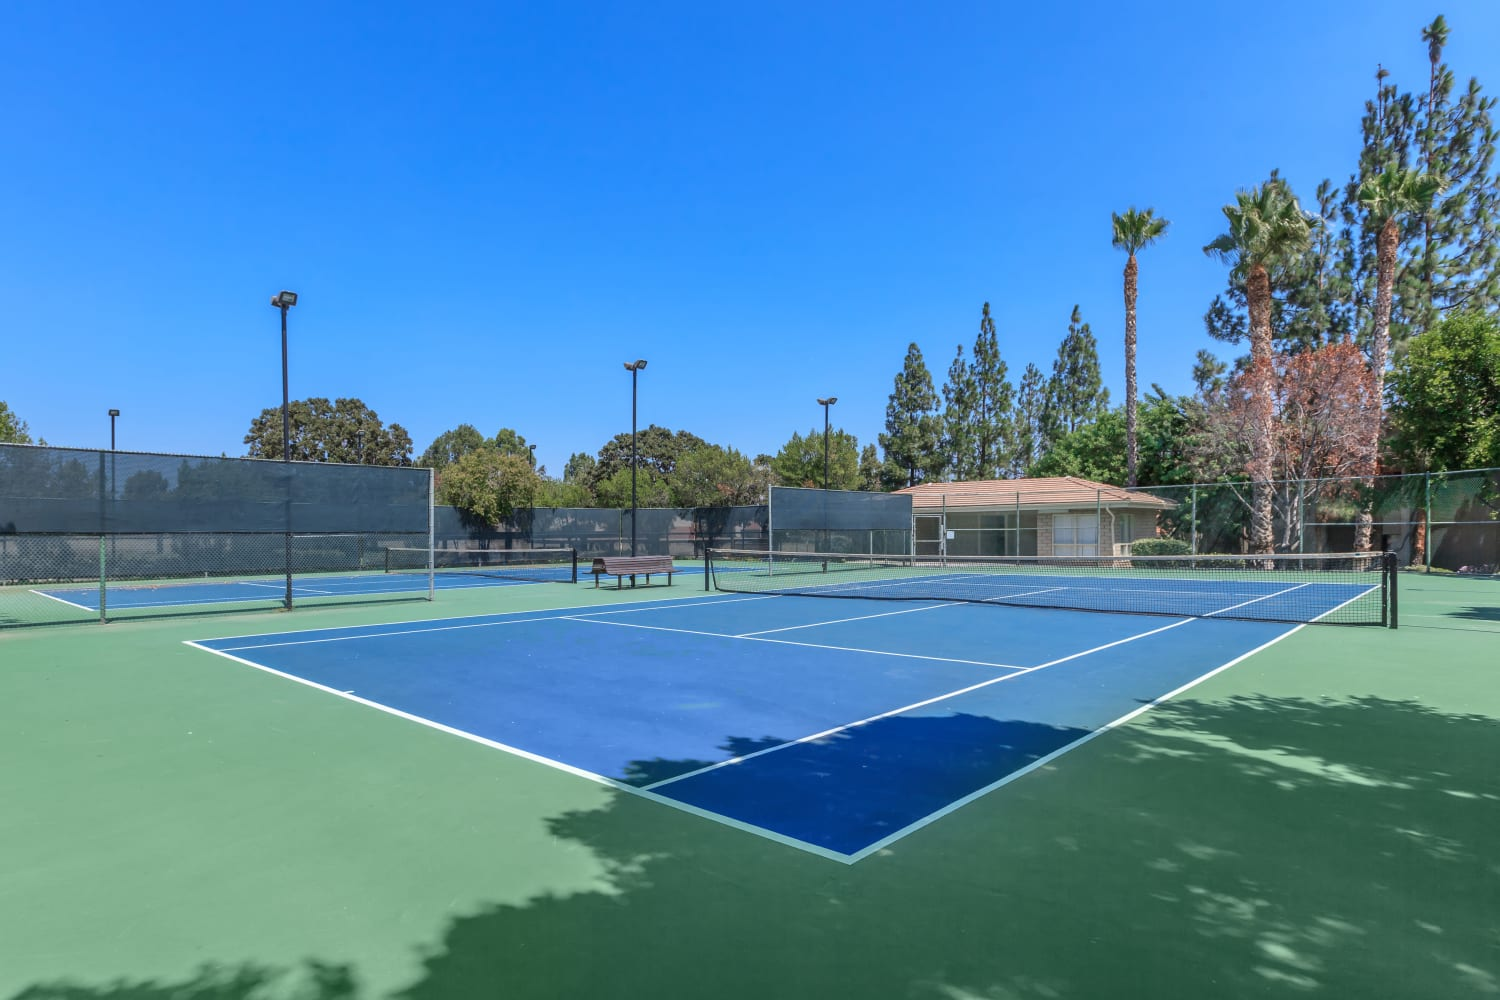 Tennis court at Parcwood Apartments in Corona, California